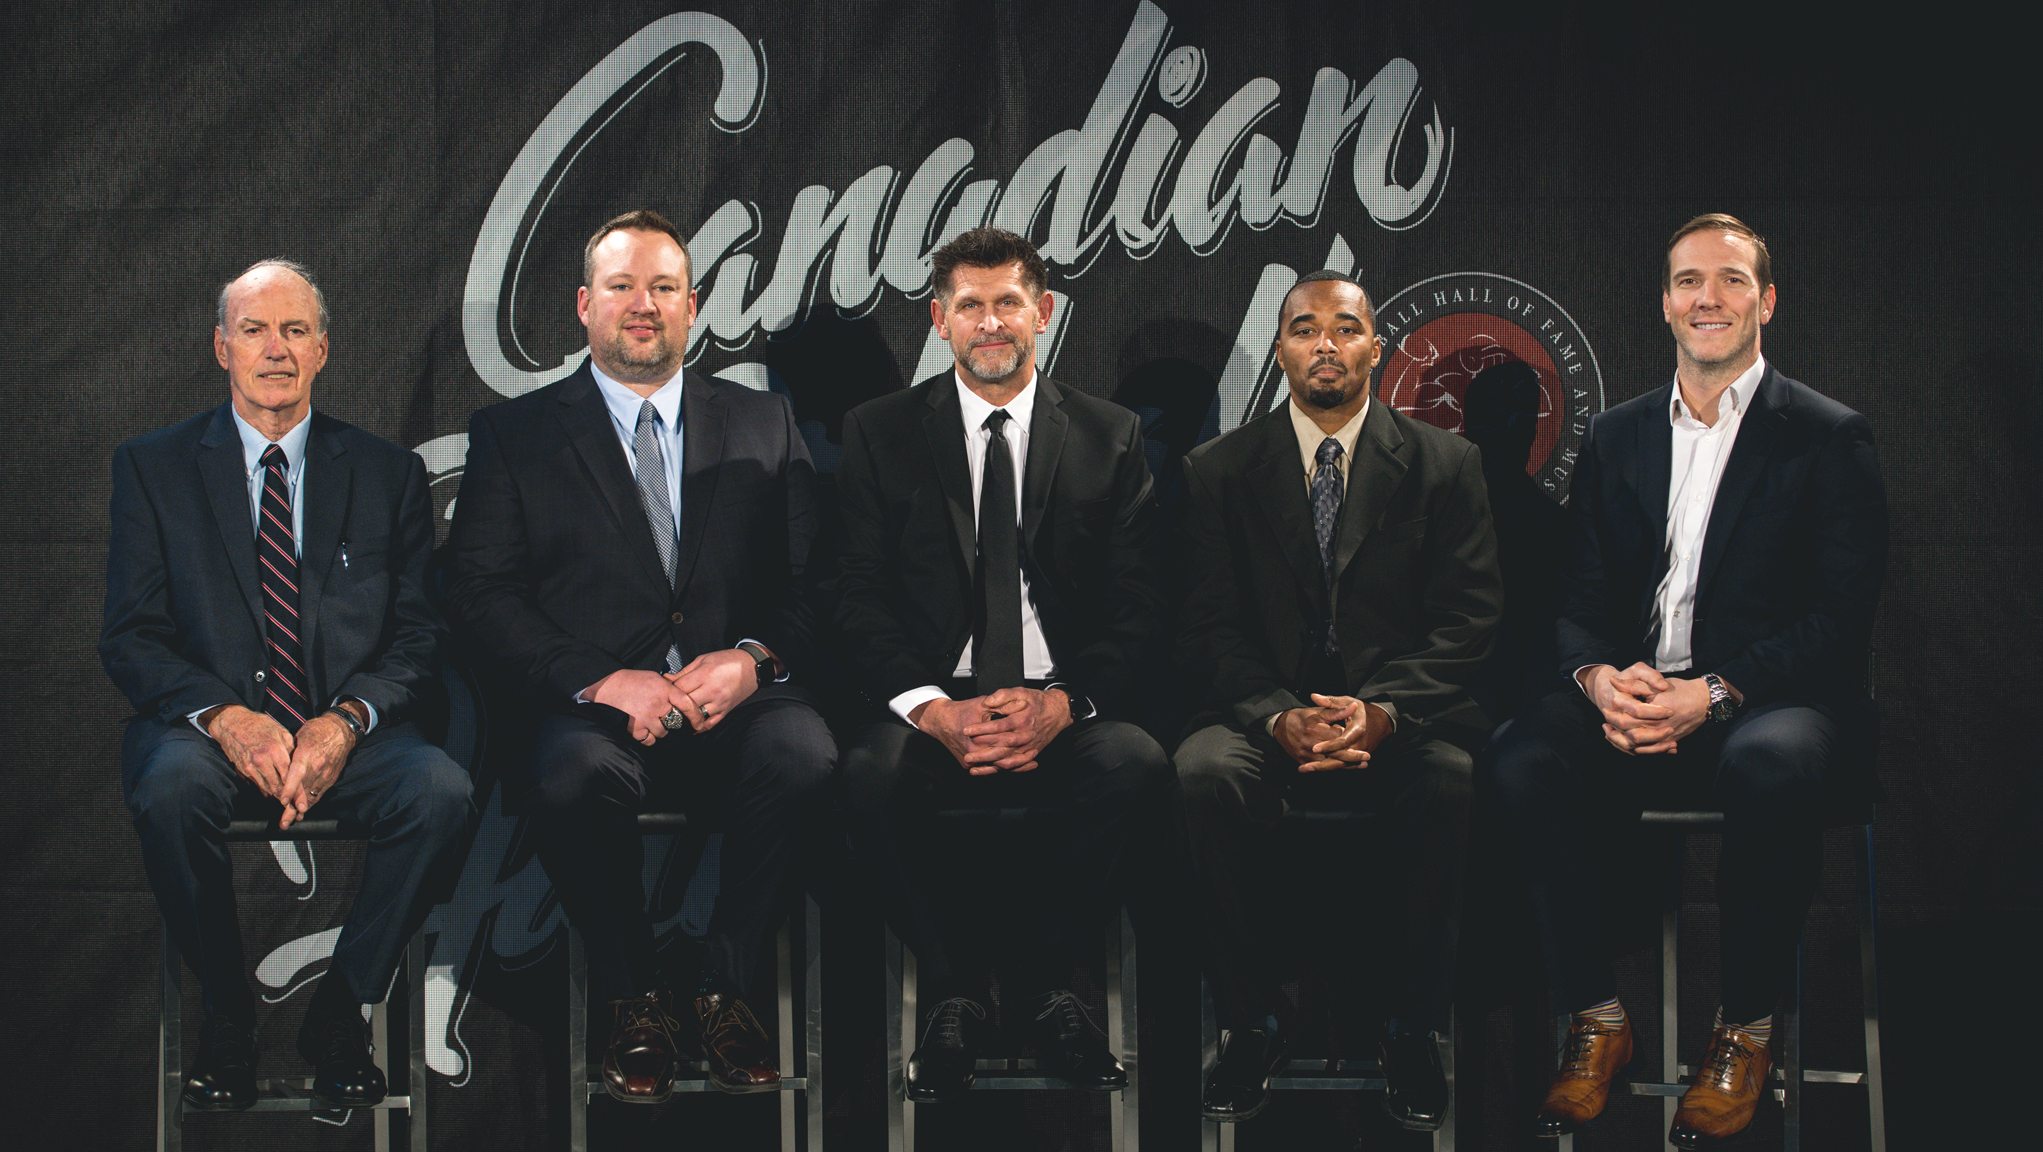 2018 Canadian Football Hall Of Fame induction ceremony: Tickets on sale now